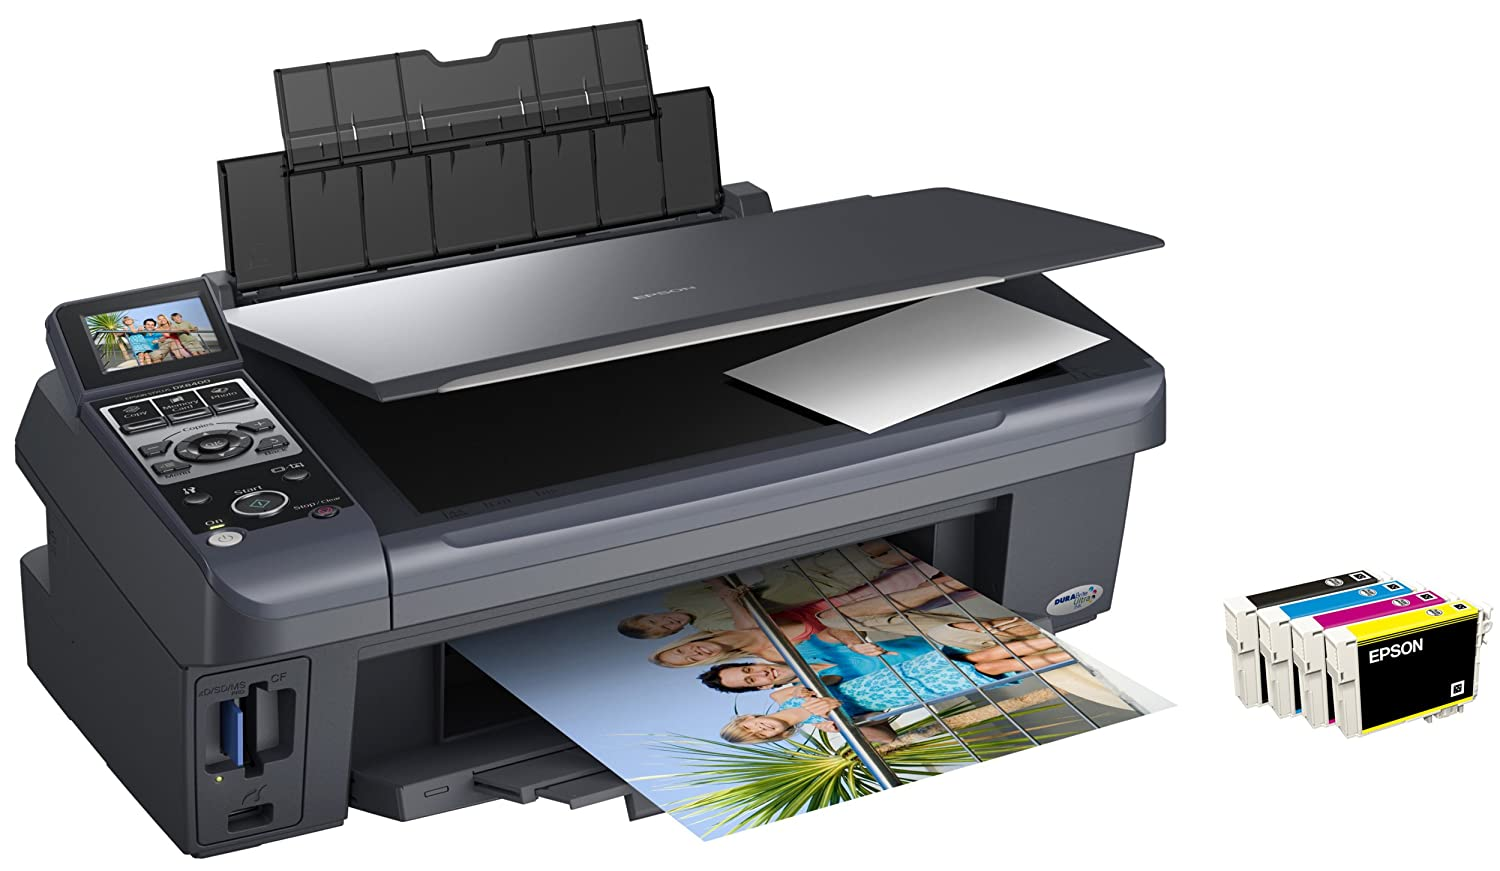 EPSON STYLUS DX8400 WINDOWS 7 X64 DRIVER DOWNLOAD